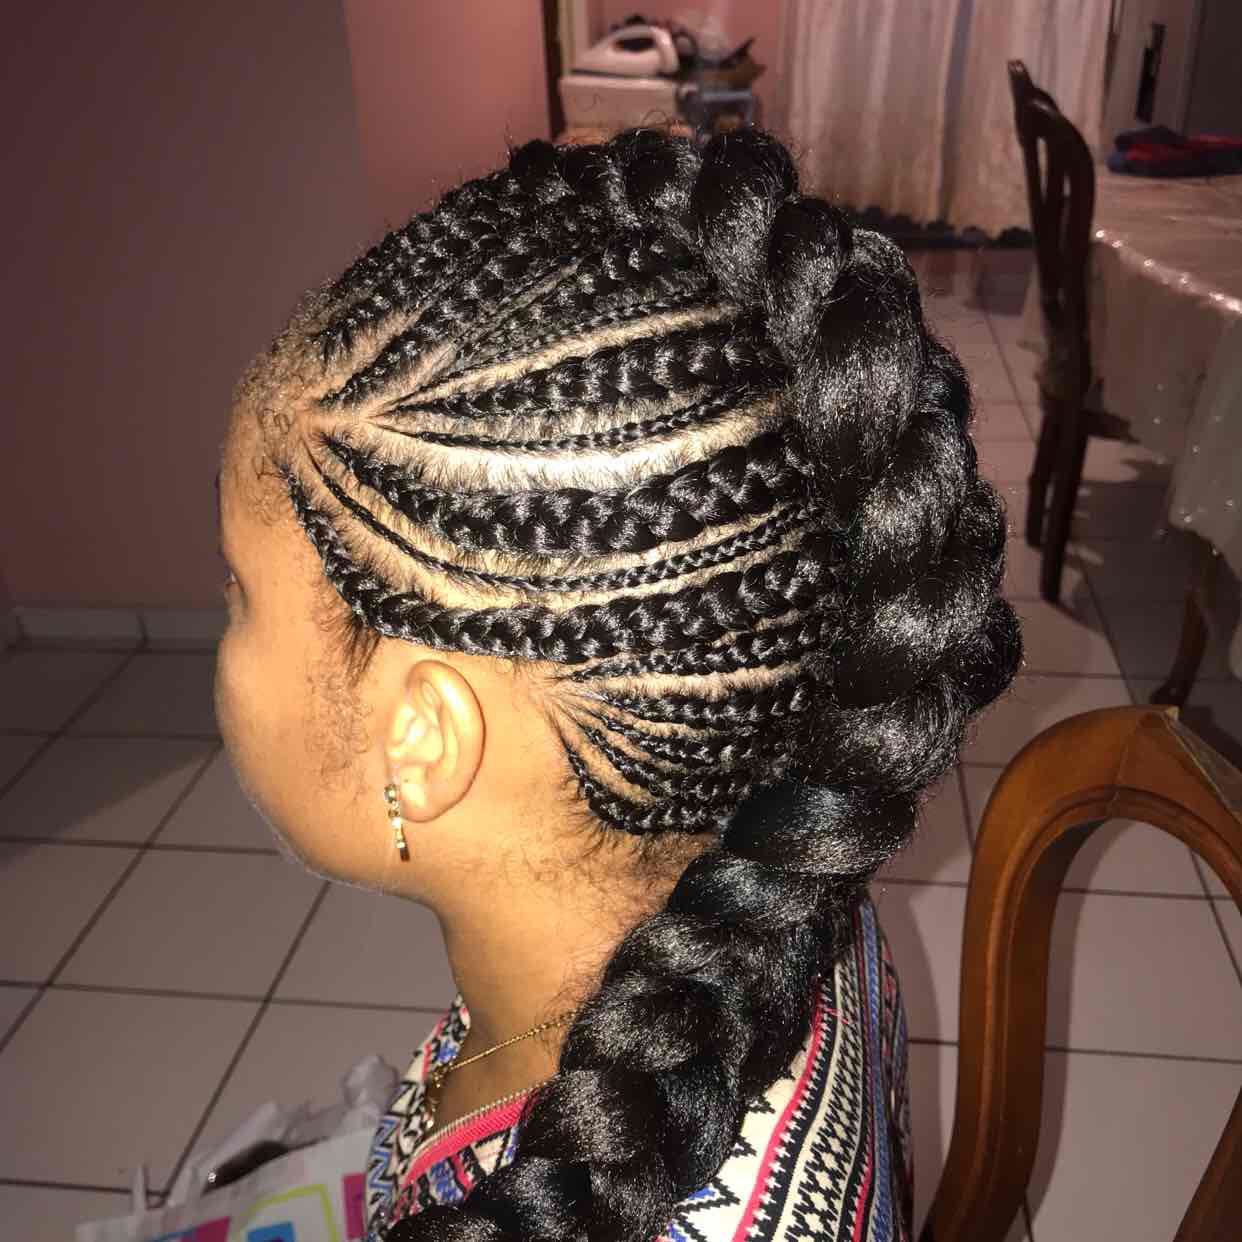 salon de coiffure afro tresse tresses box braids crochet braids vanilles tissages paris 75 77 78 91 92 93 94 95 TXWJGOMN